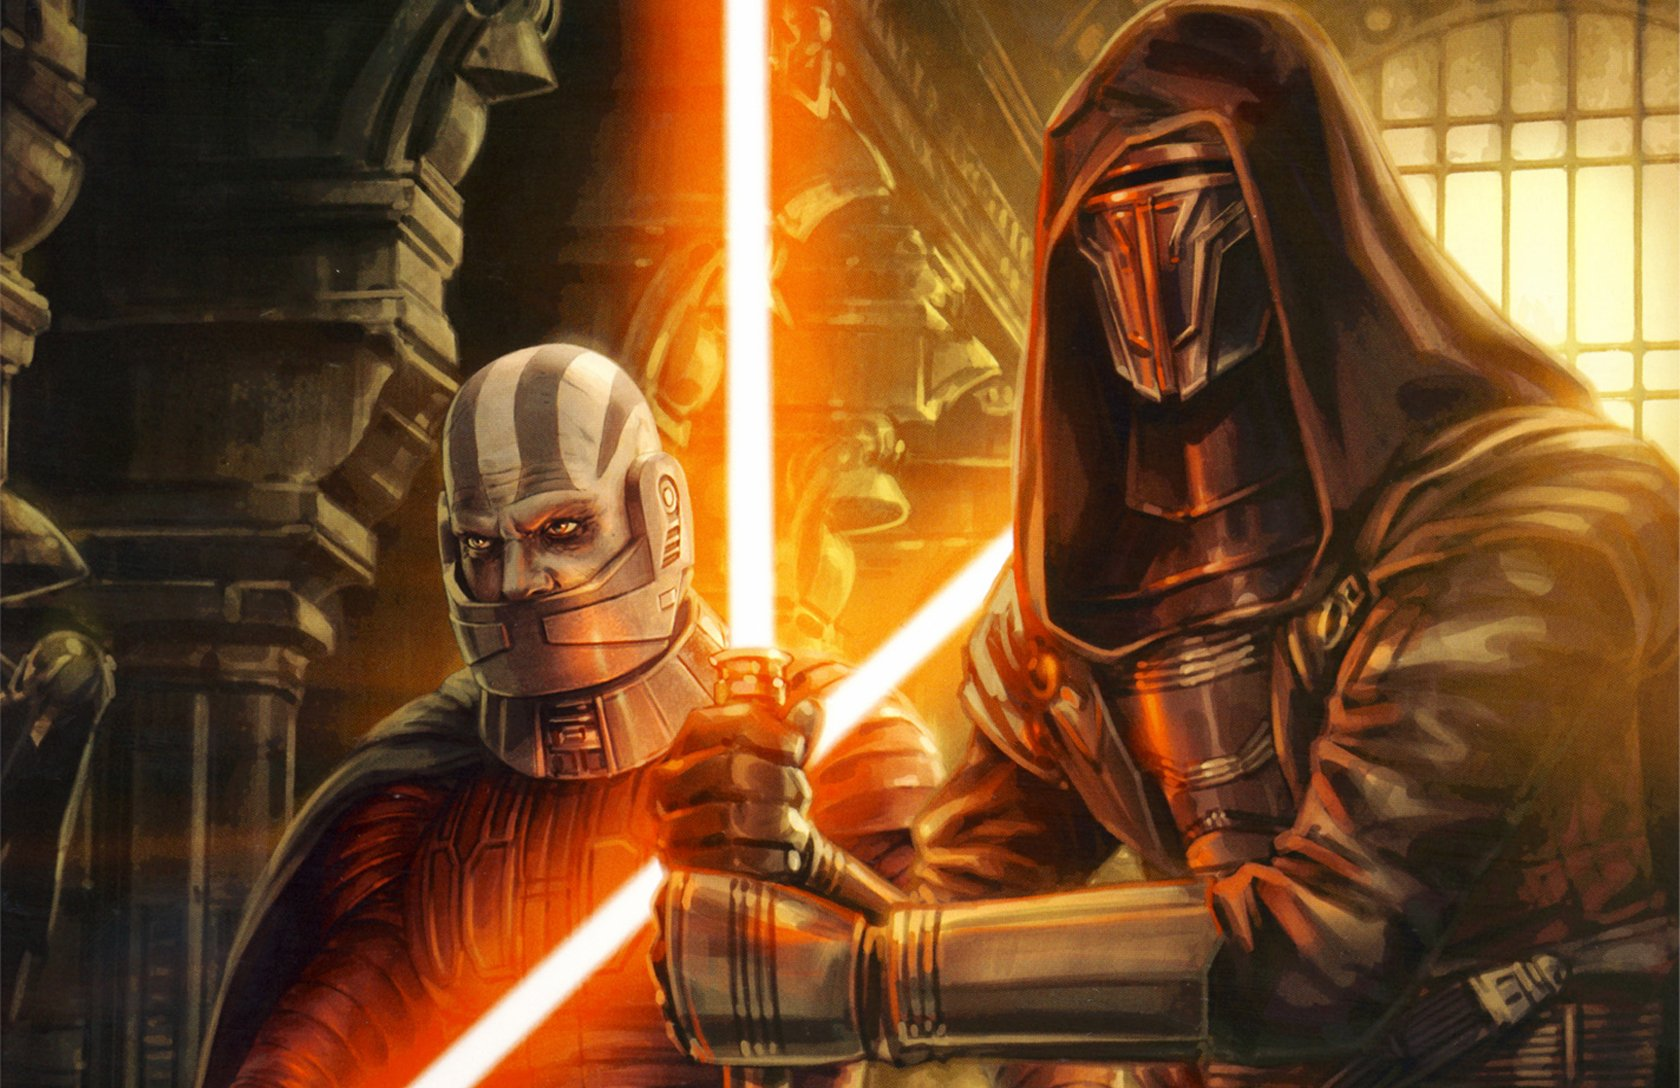 1452348221 darth malak revan sith star wars 1080p hd wallpaper file